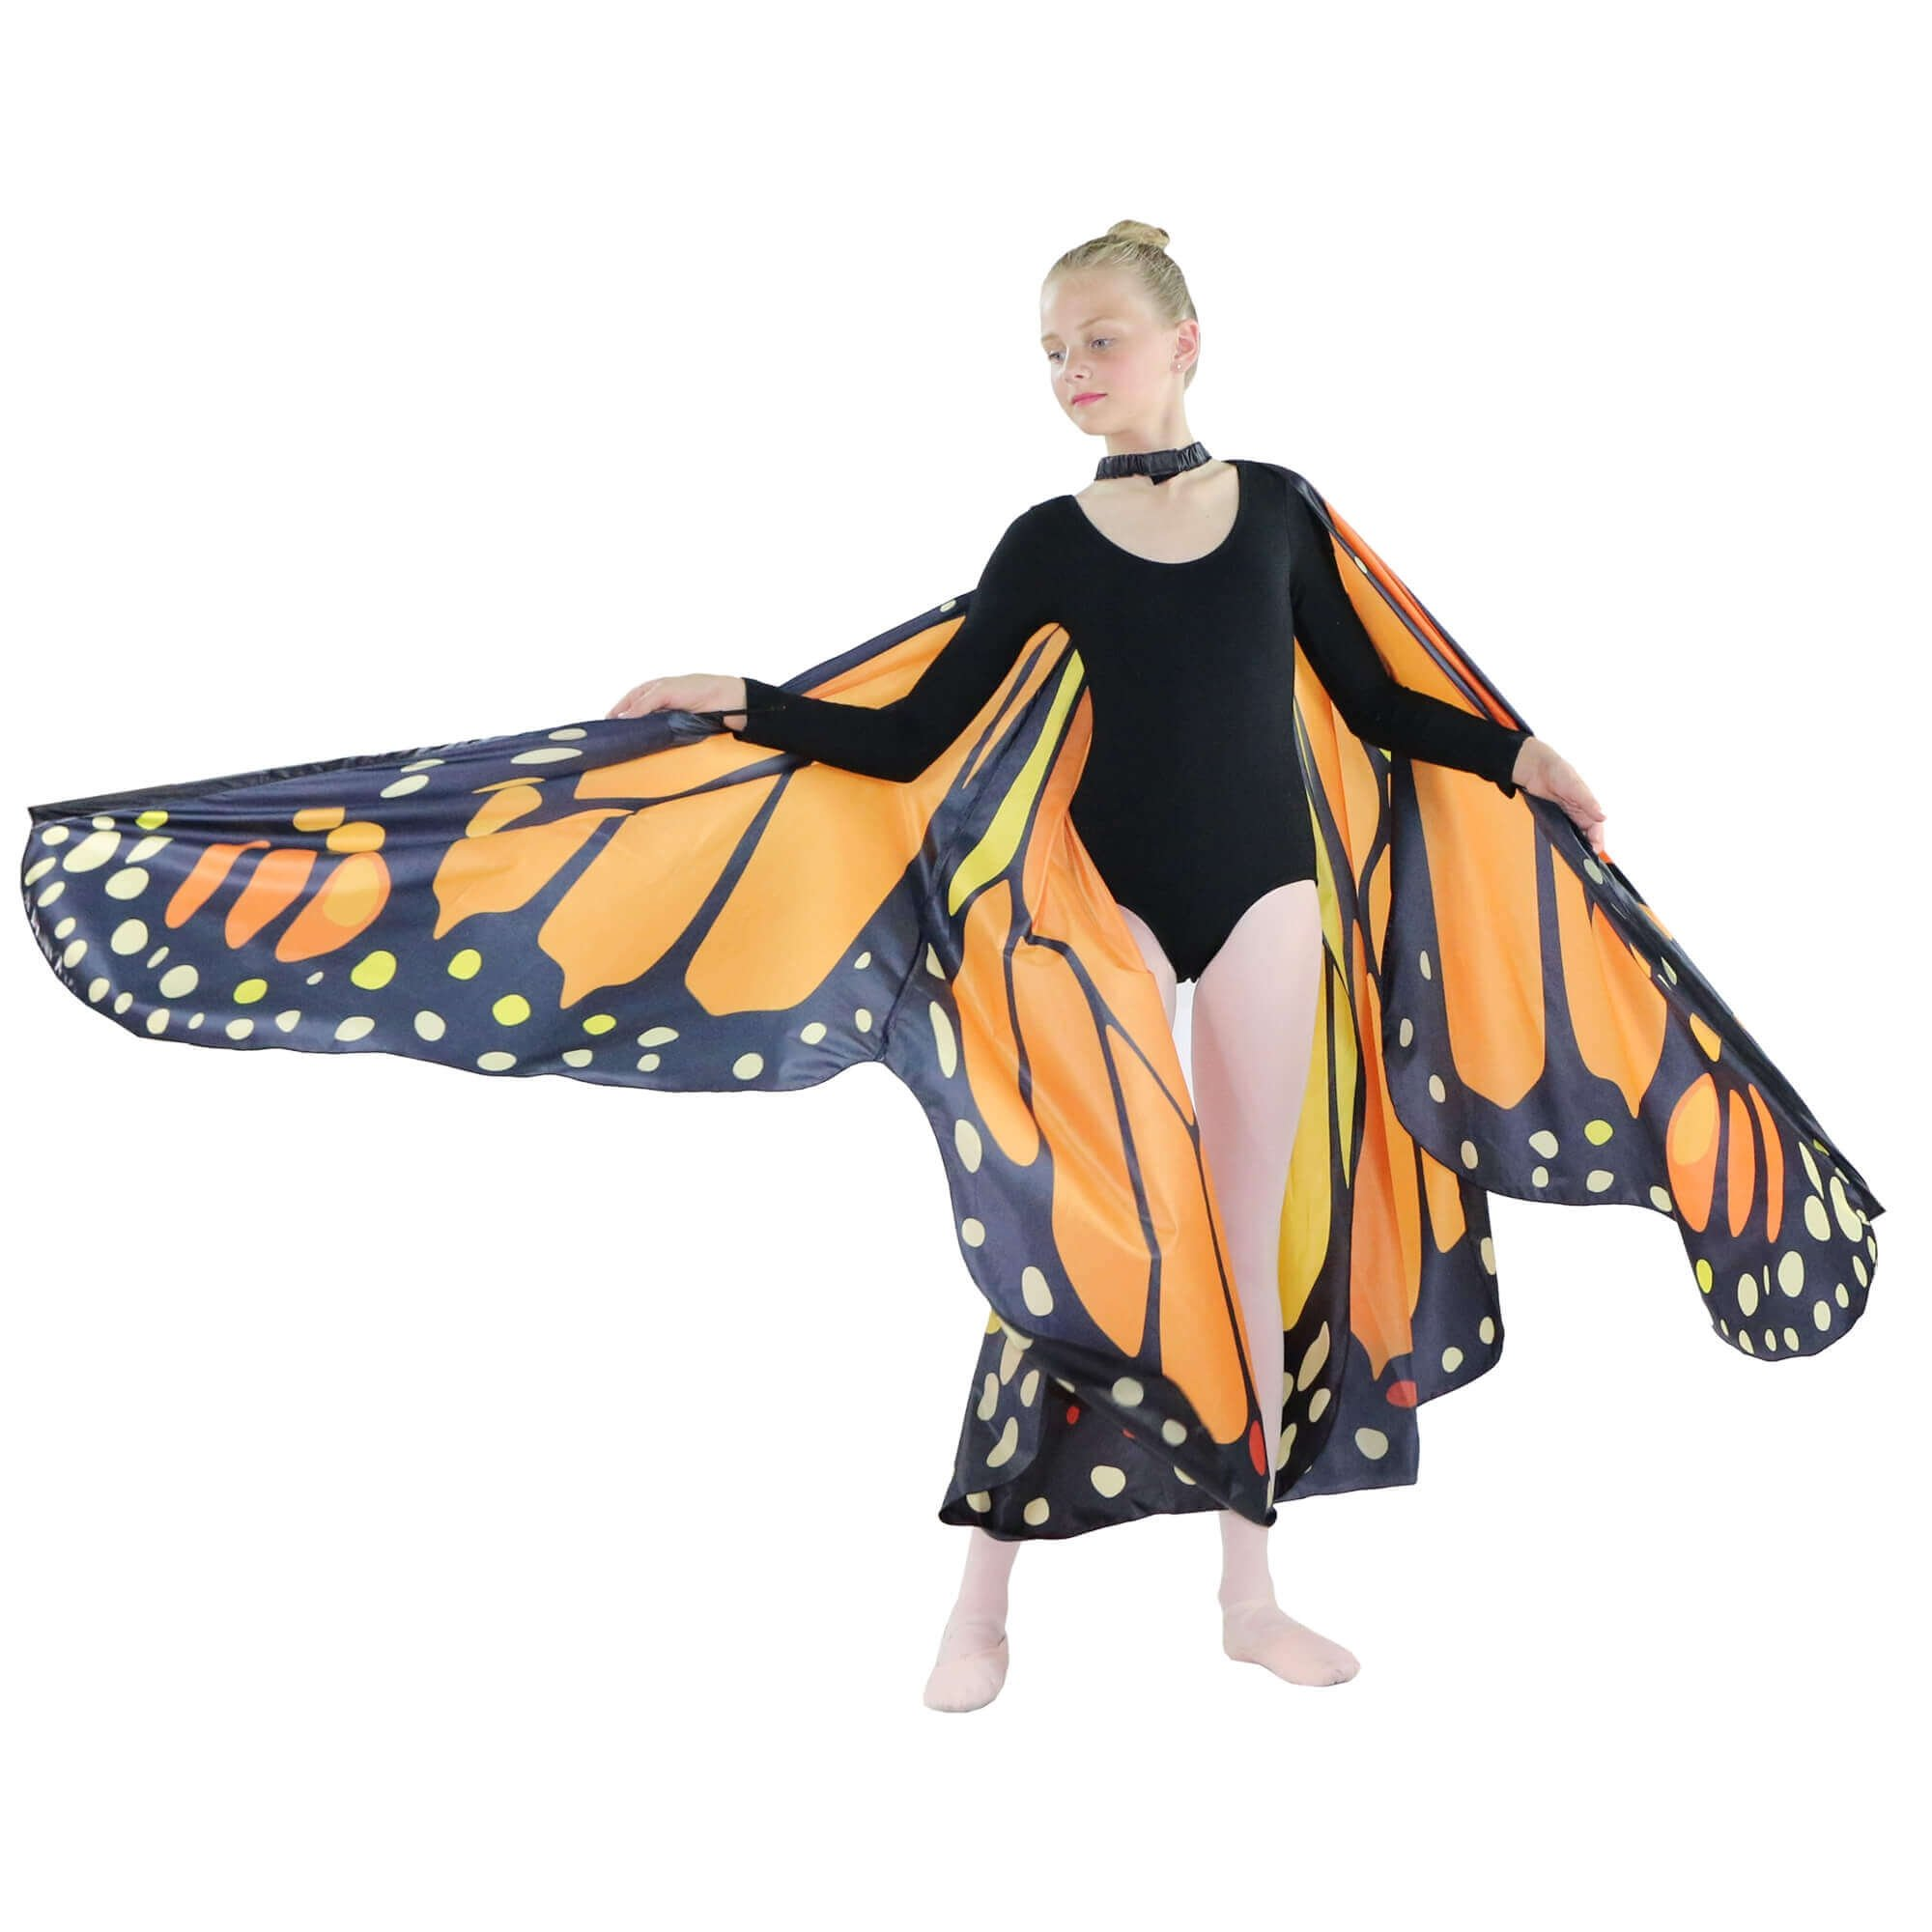 Danzcue Child Butterfly Wing